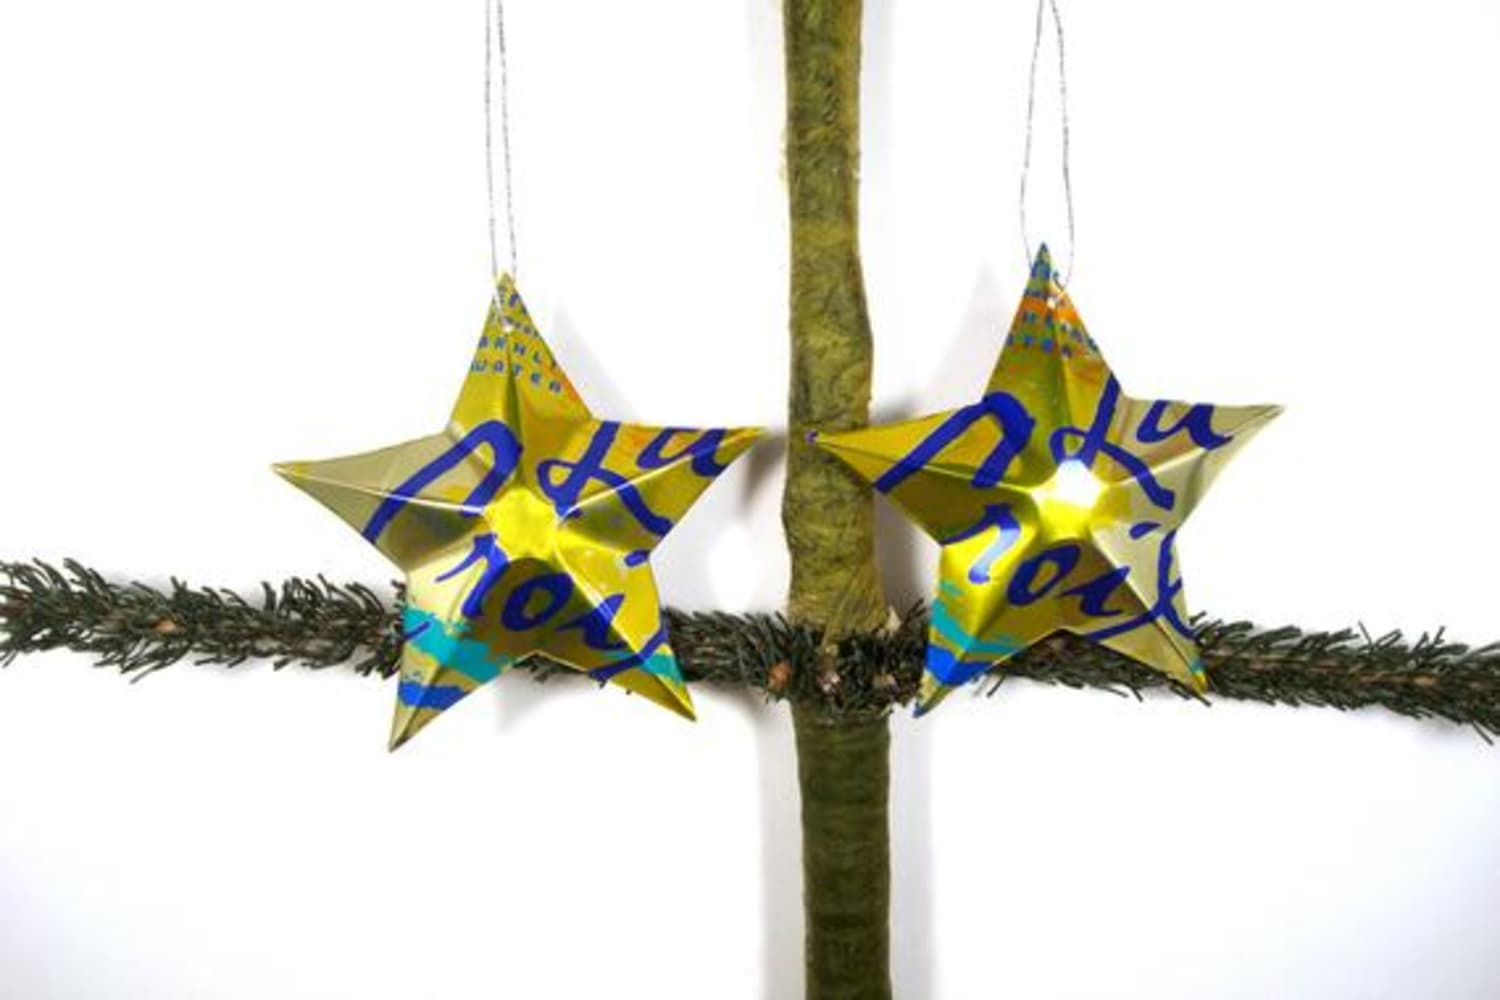 You Can Buy La Croix Ornaments This Christmas